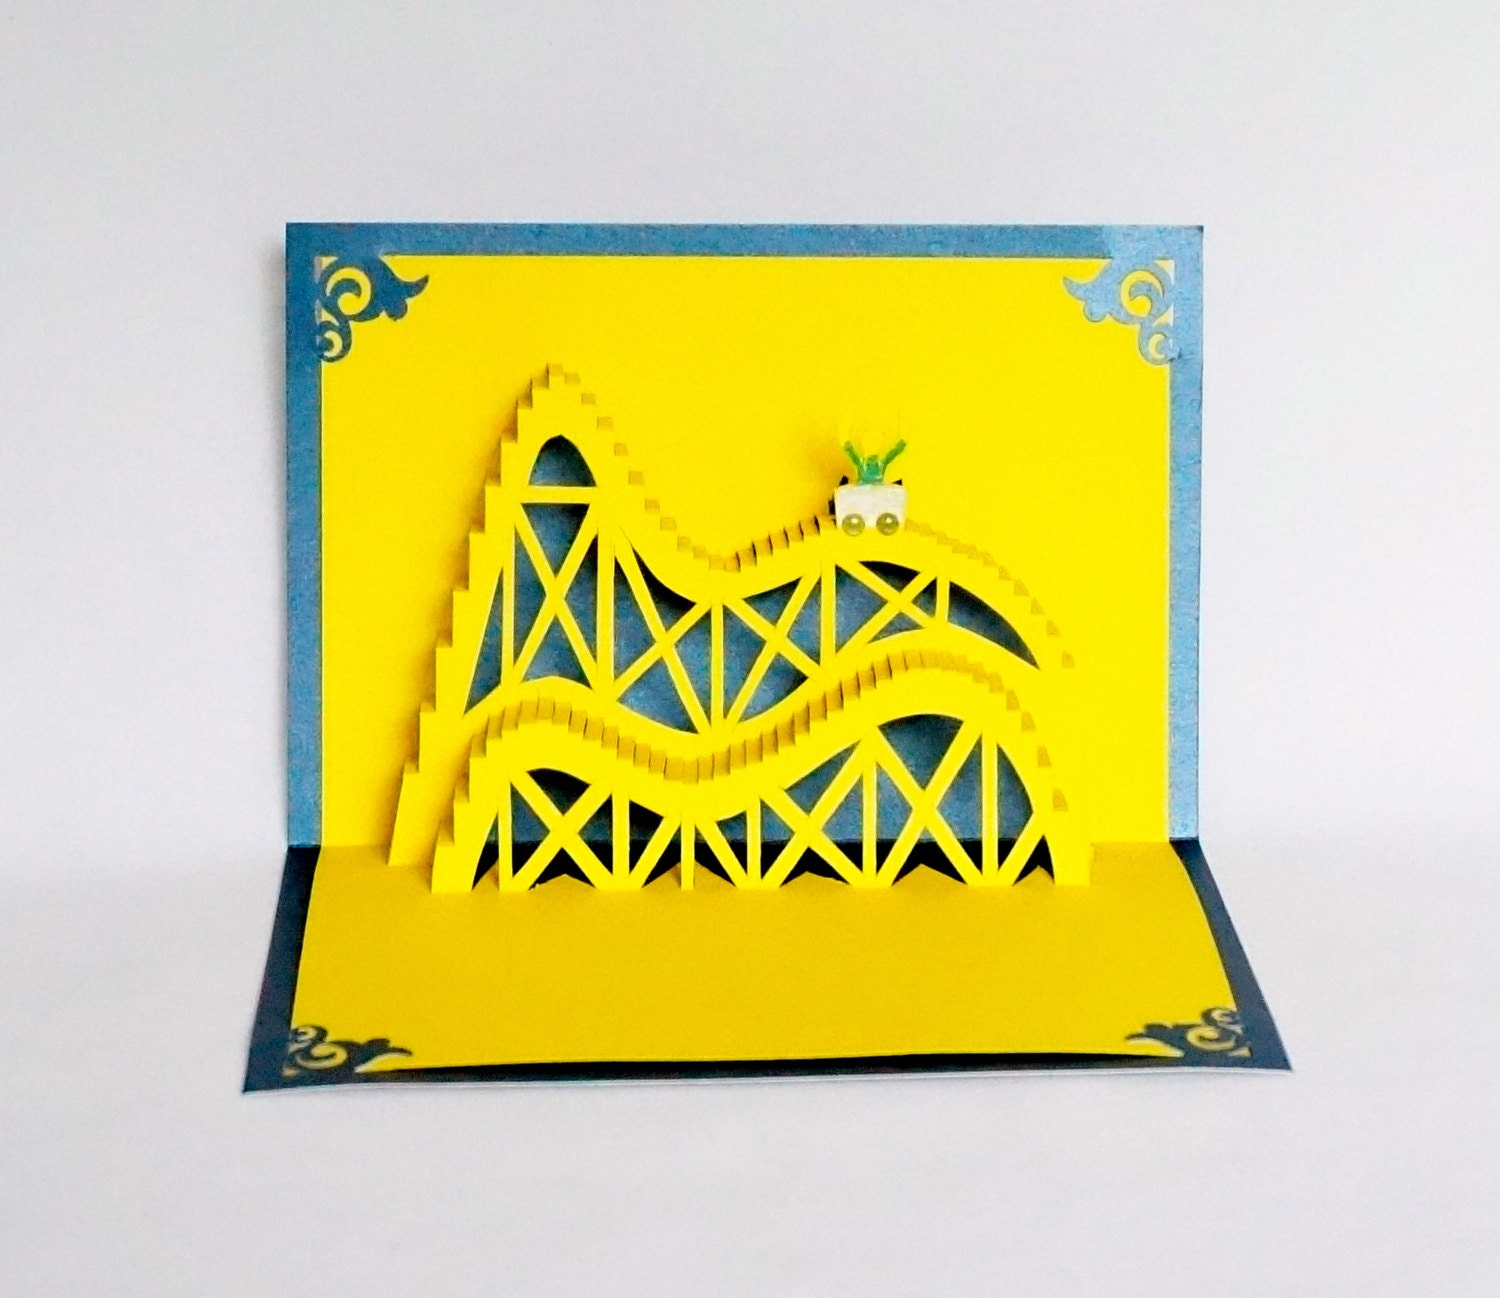 Roller coaster 3d pop up greeting card birthday vacation zoom kristyandbryce Image collections